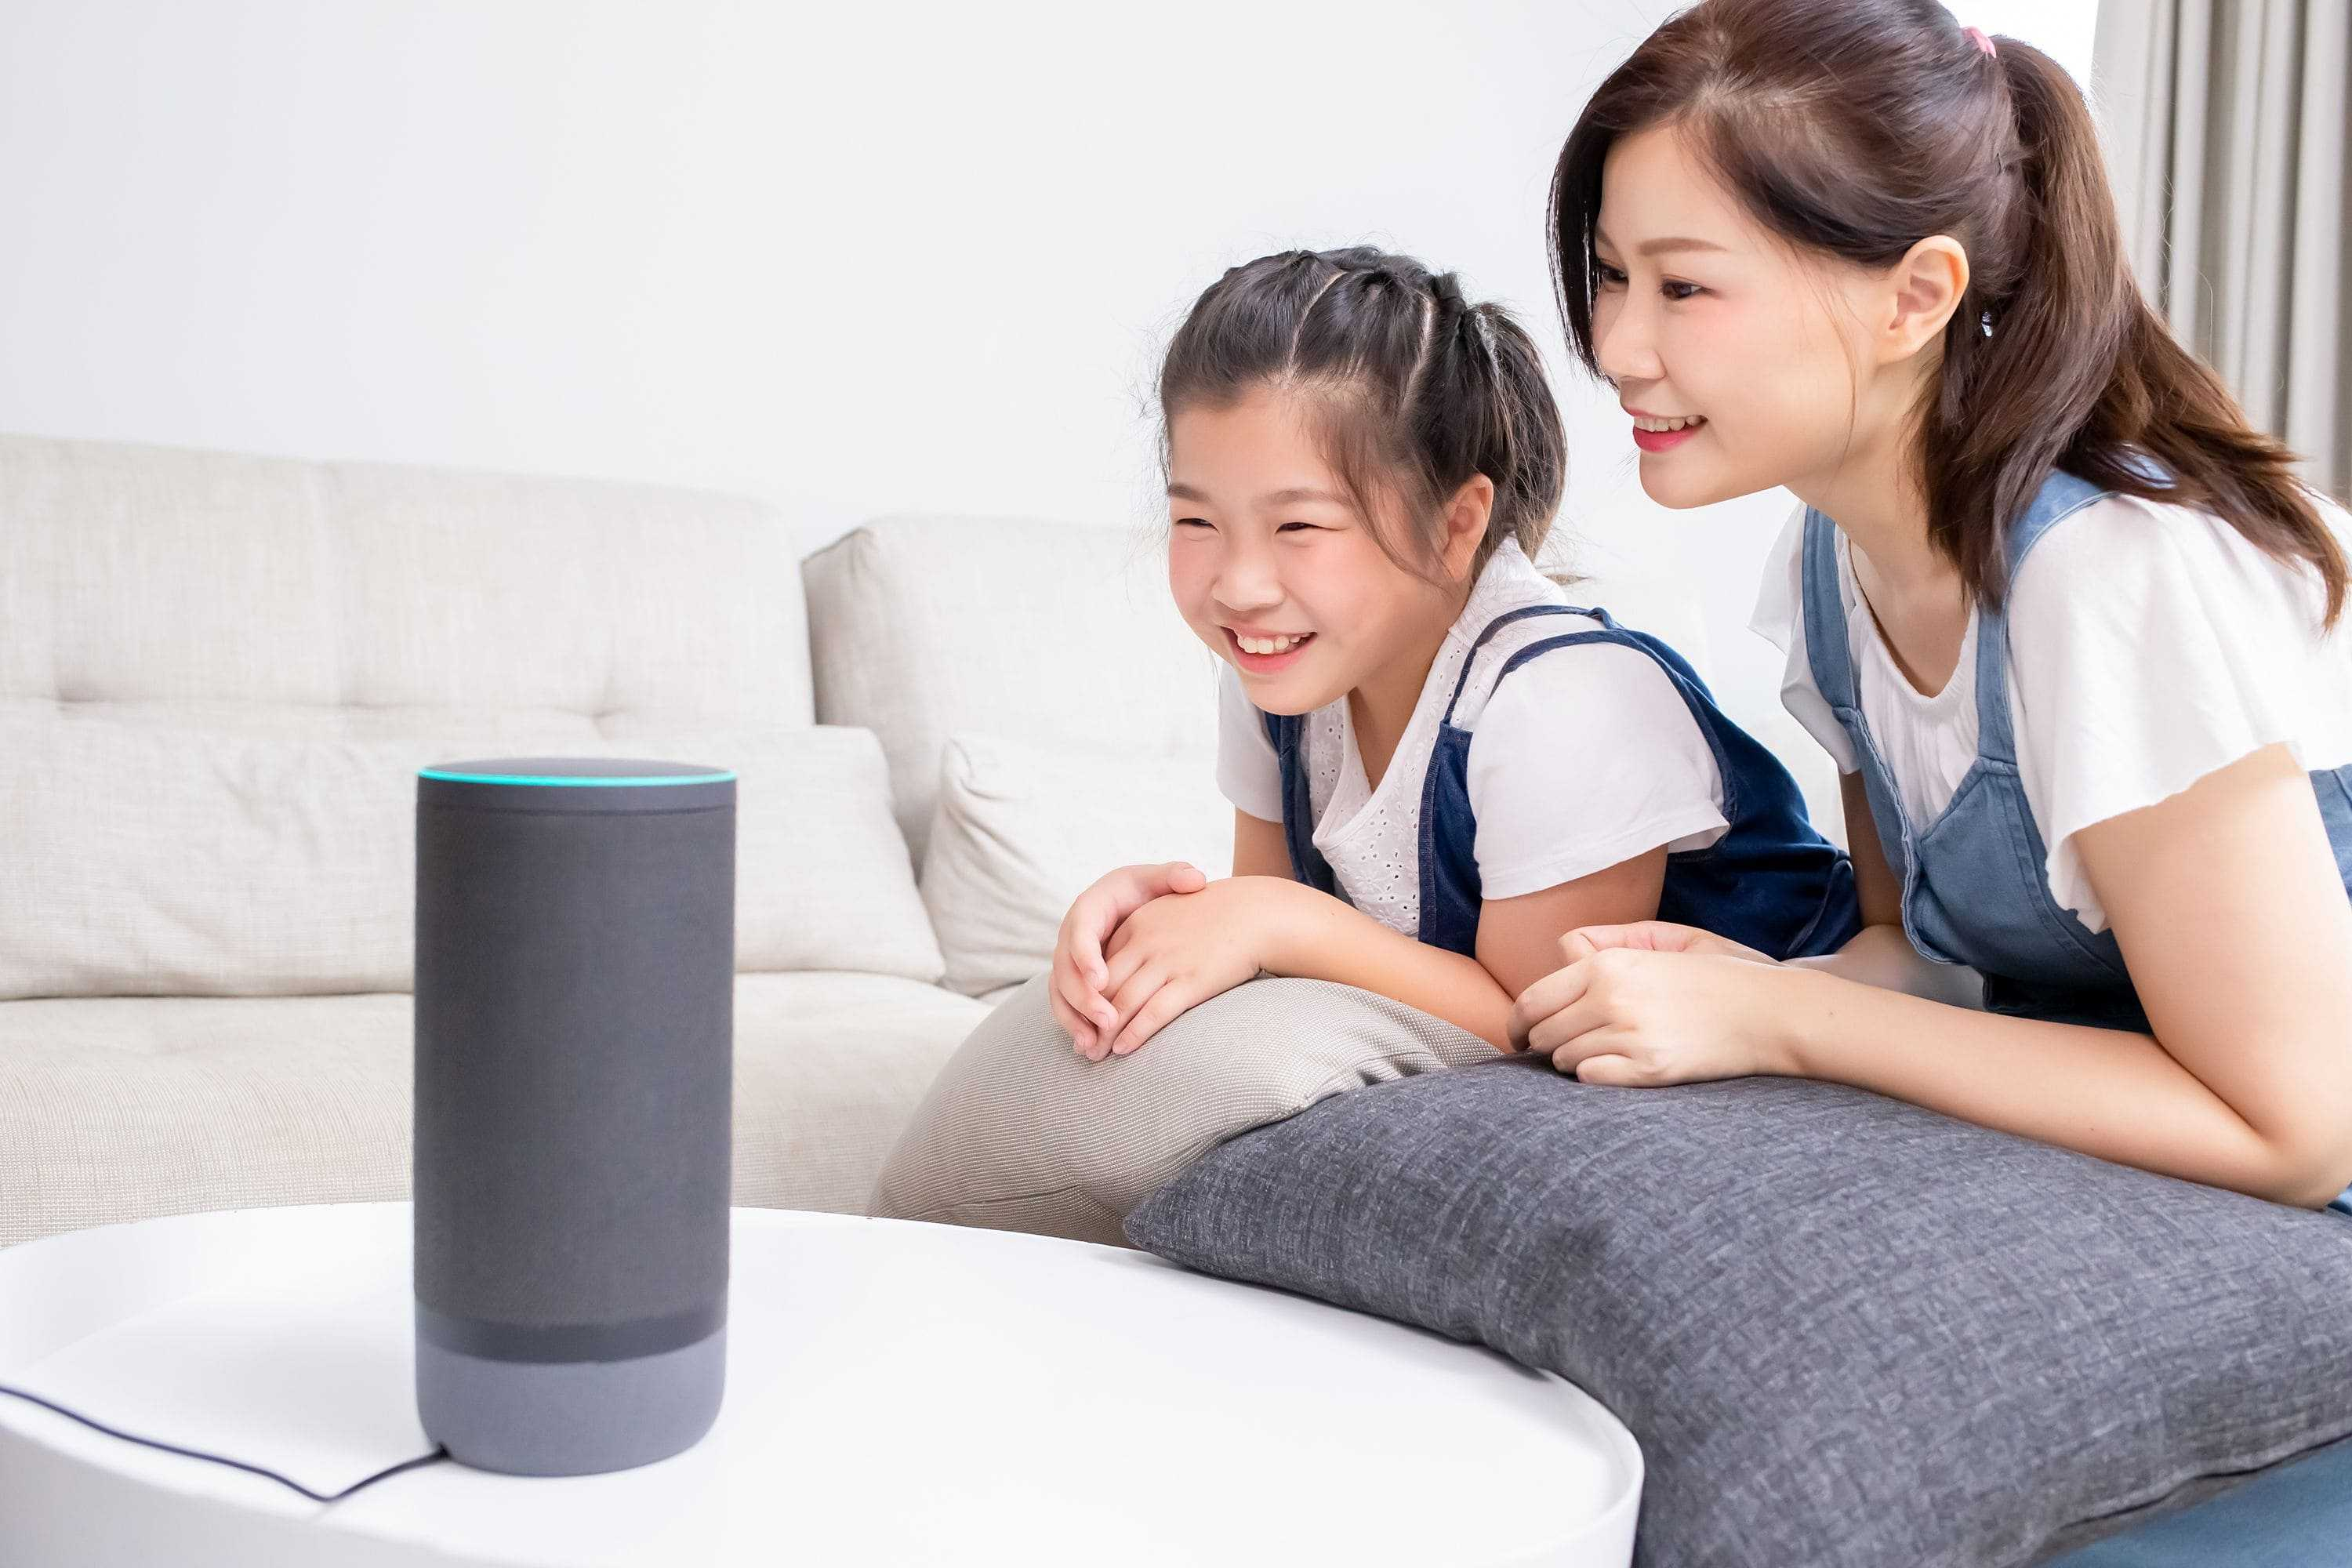 voice commands for home assistant